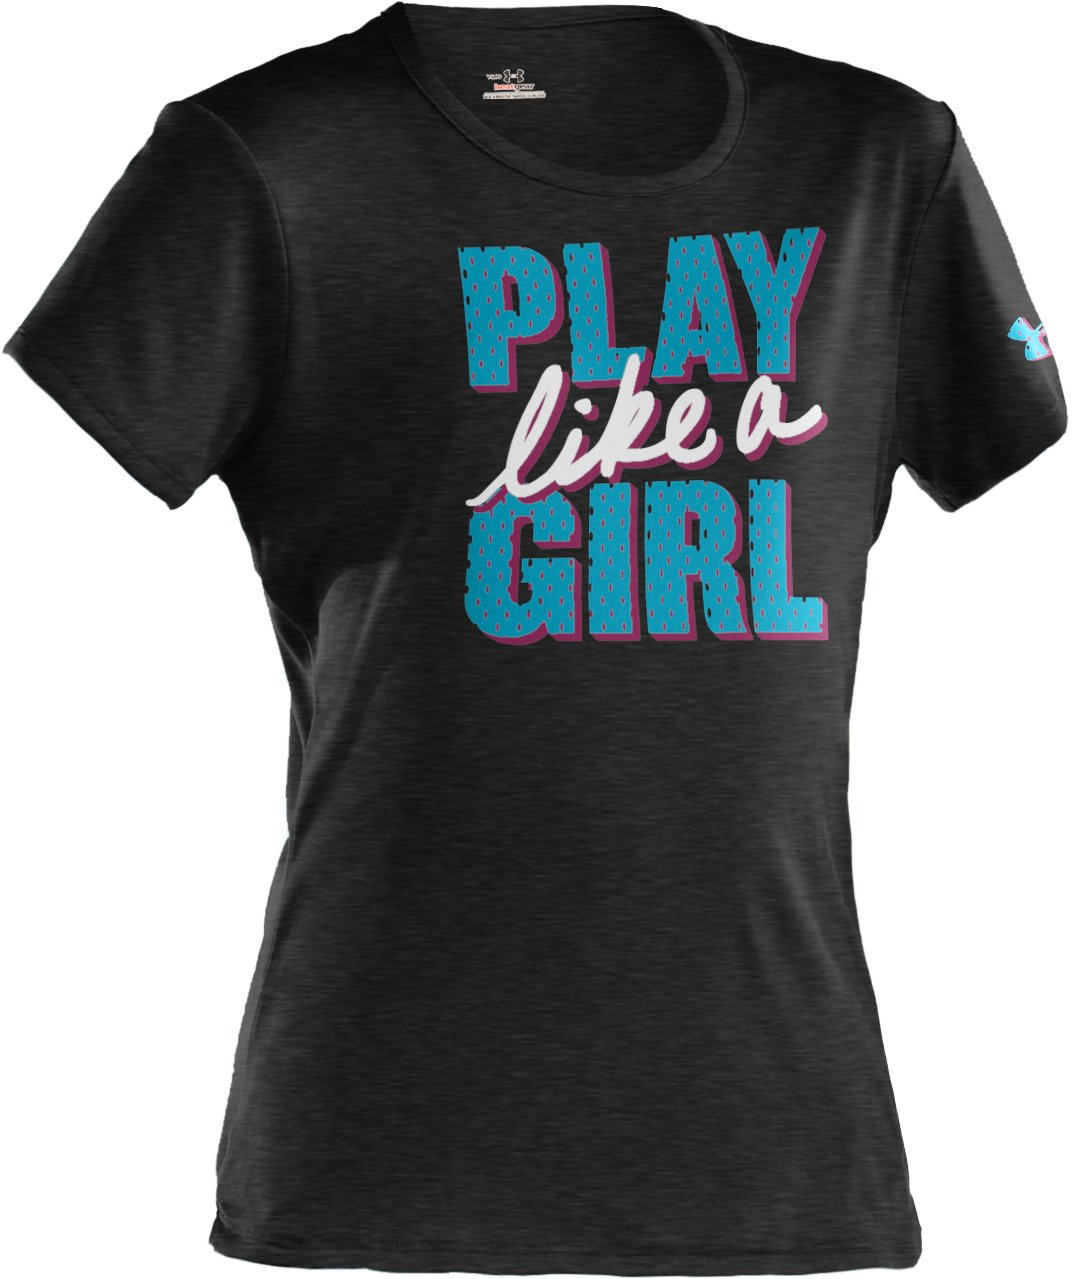 Girls' Play Like A Girl Graphic T-Shirt, Asphalt Heather, zoomed image